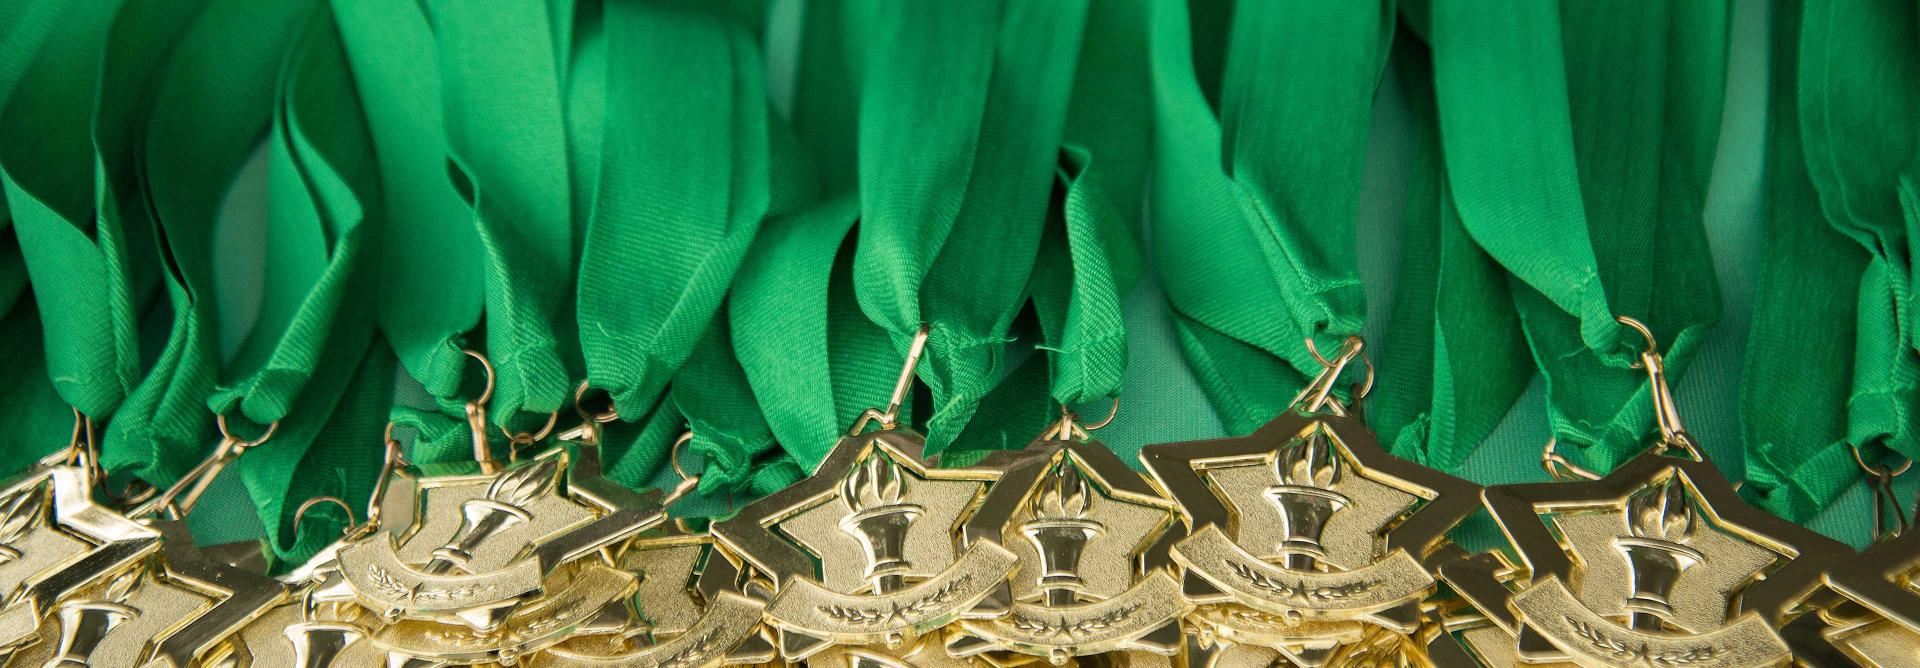 NSPCC Adventure Challenge medals